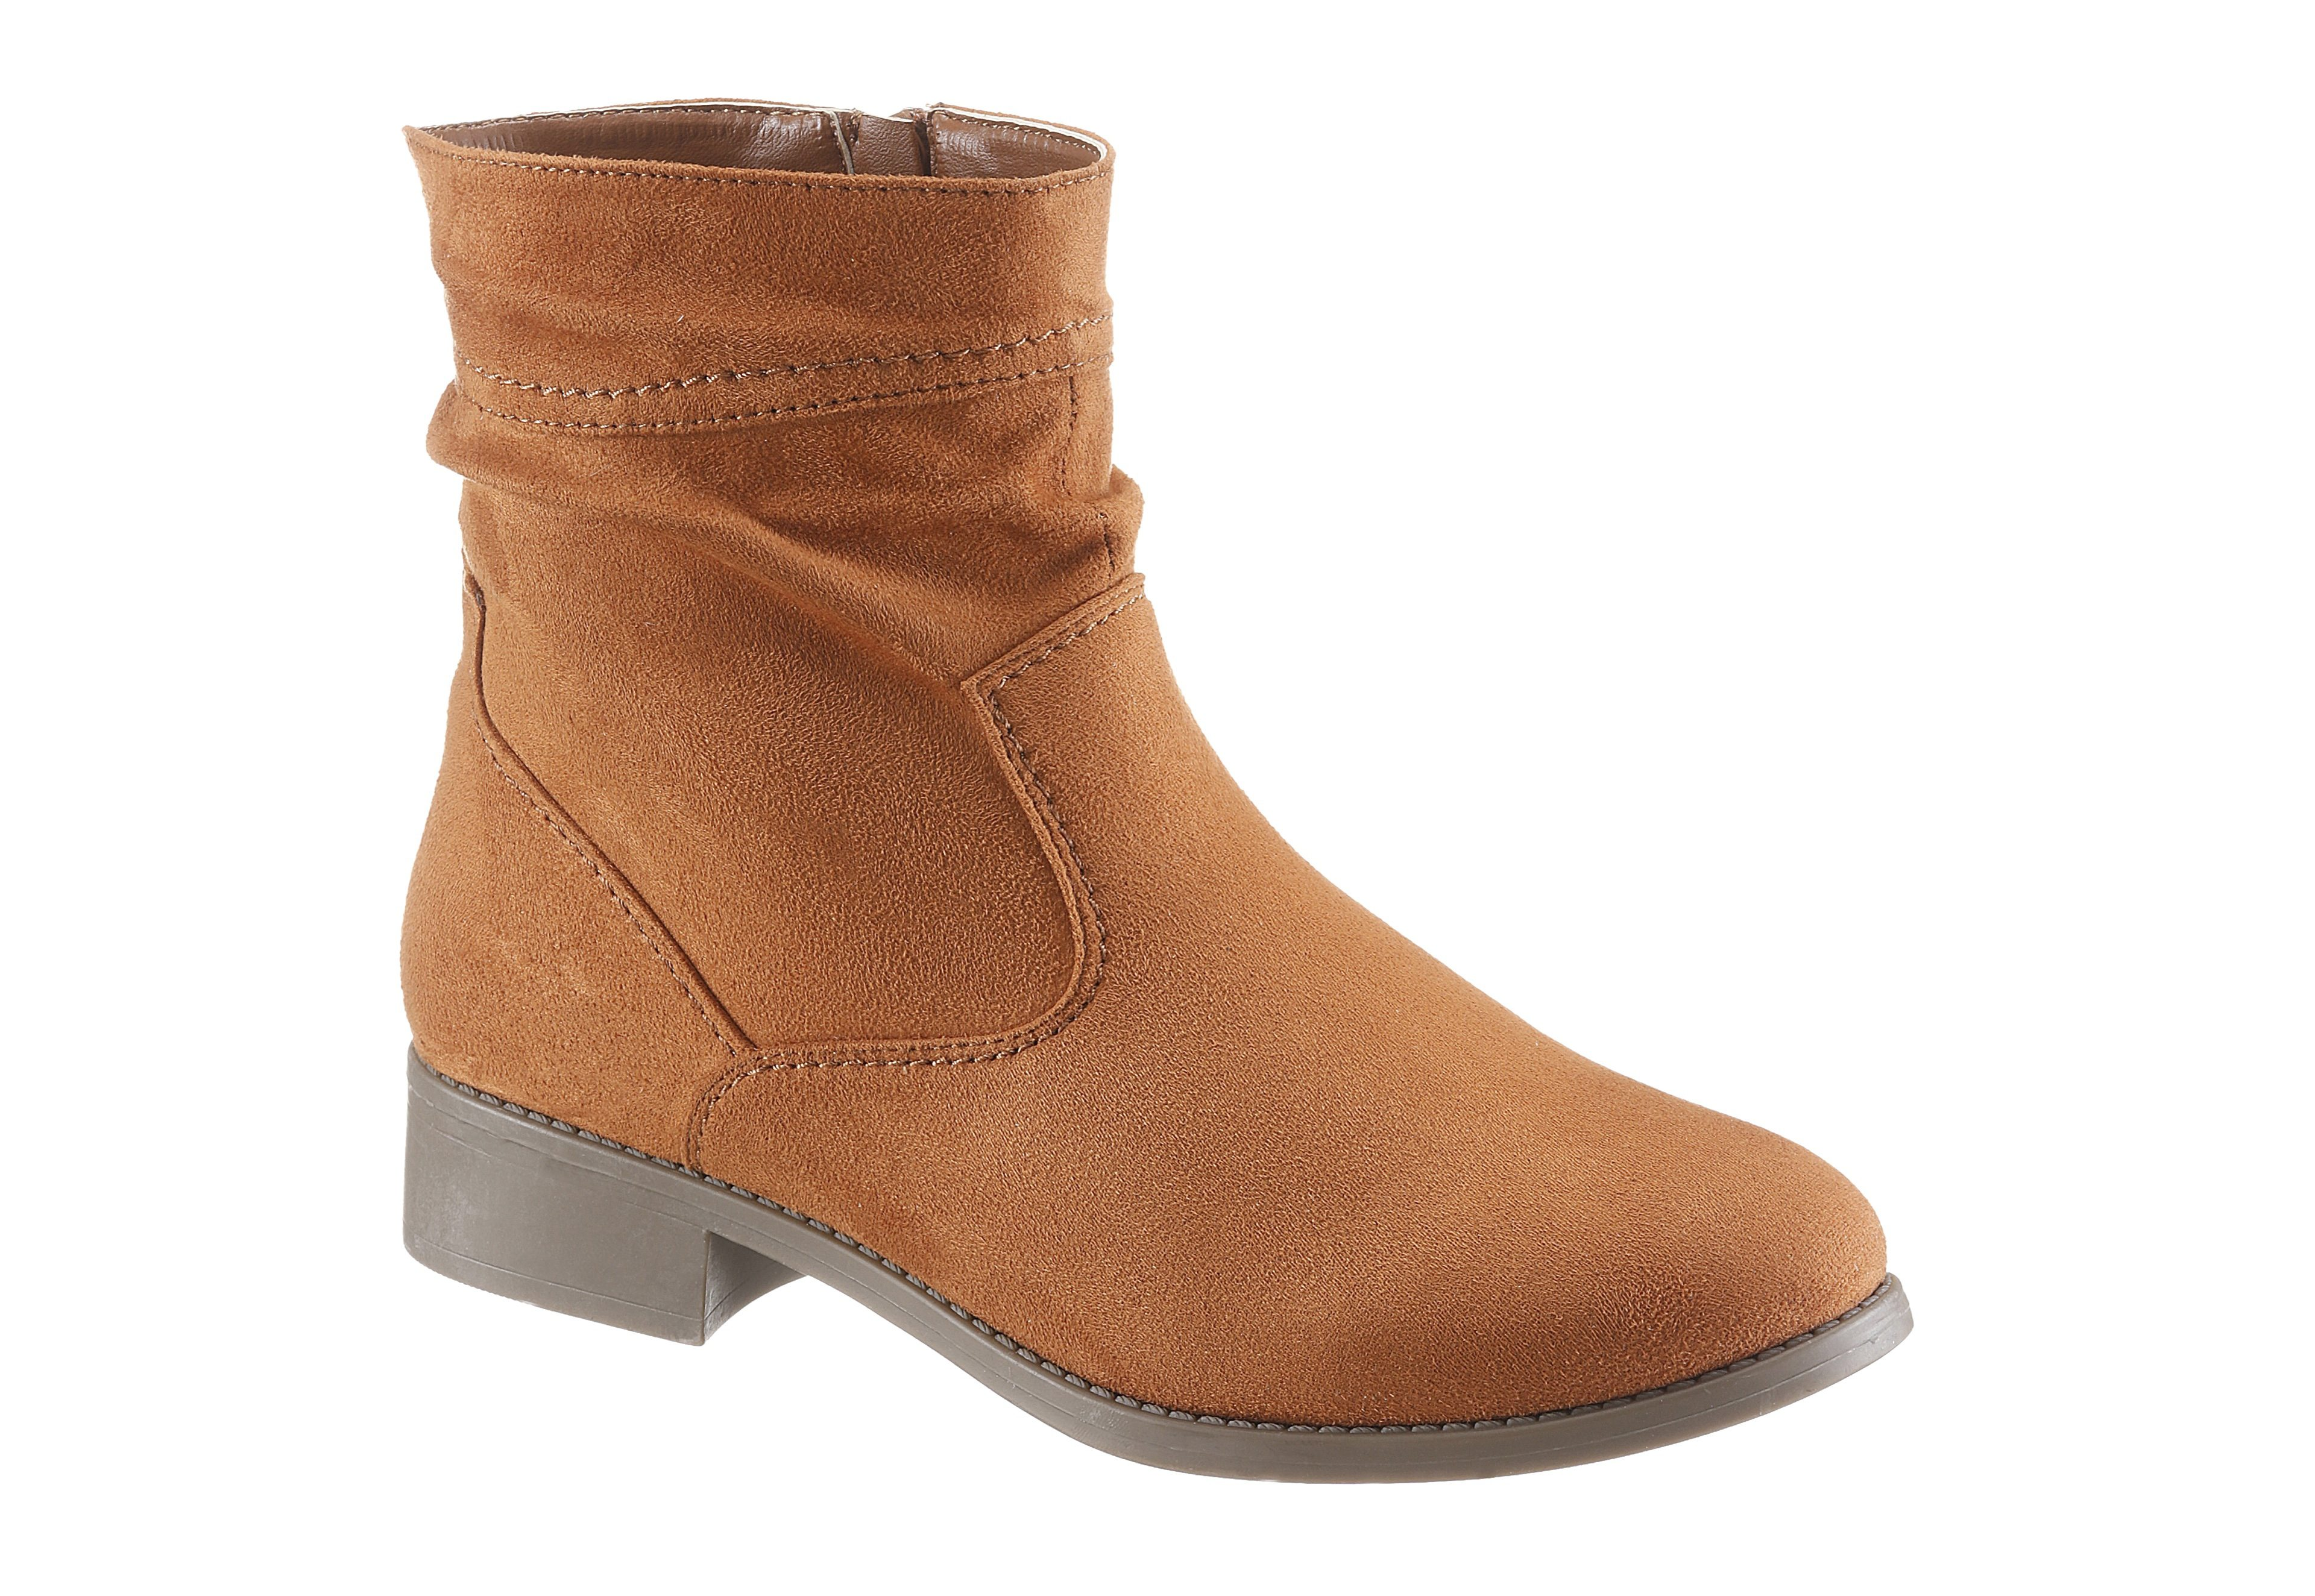 CITY WALK Schlupfboots, im Basic-Look kaufen  camelfarben